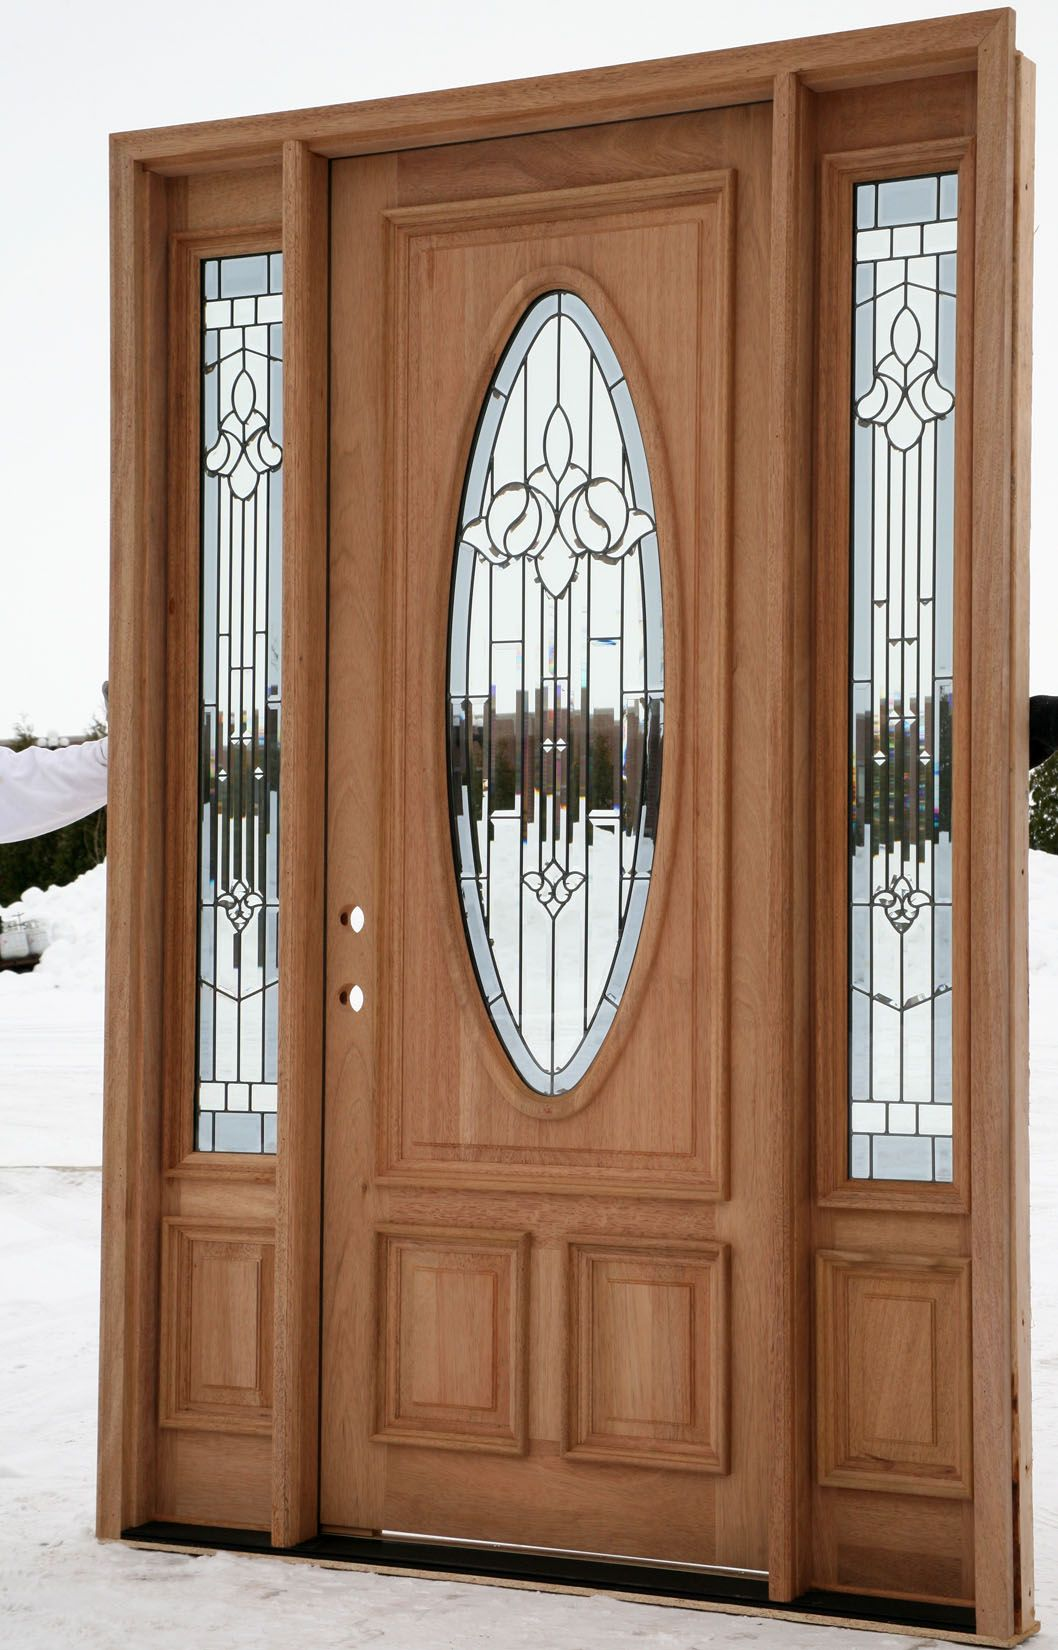 Wood Doors Technology With Tradition Exacting Artistry It Depends On Sever  Factors The Wood Every Tree Is Solid Wood Core 20 Simpson Door Has Built